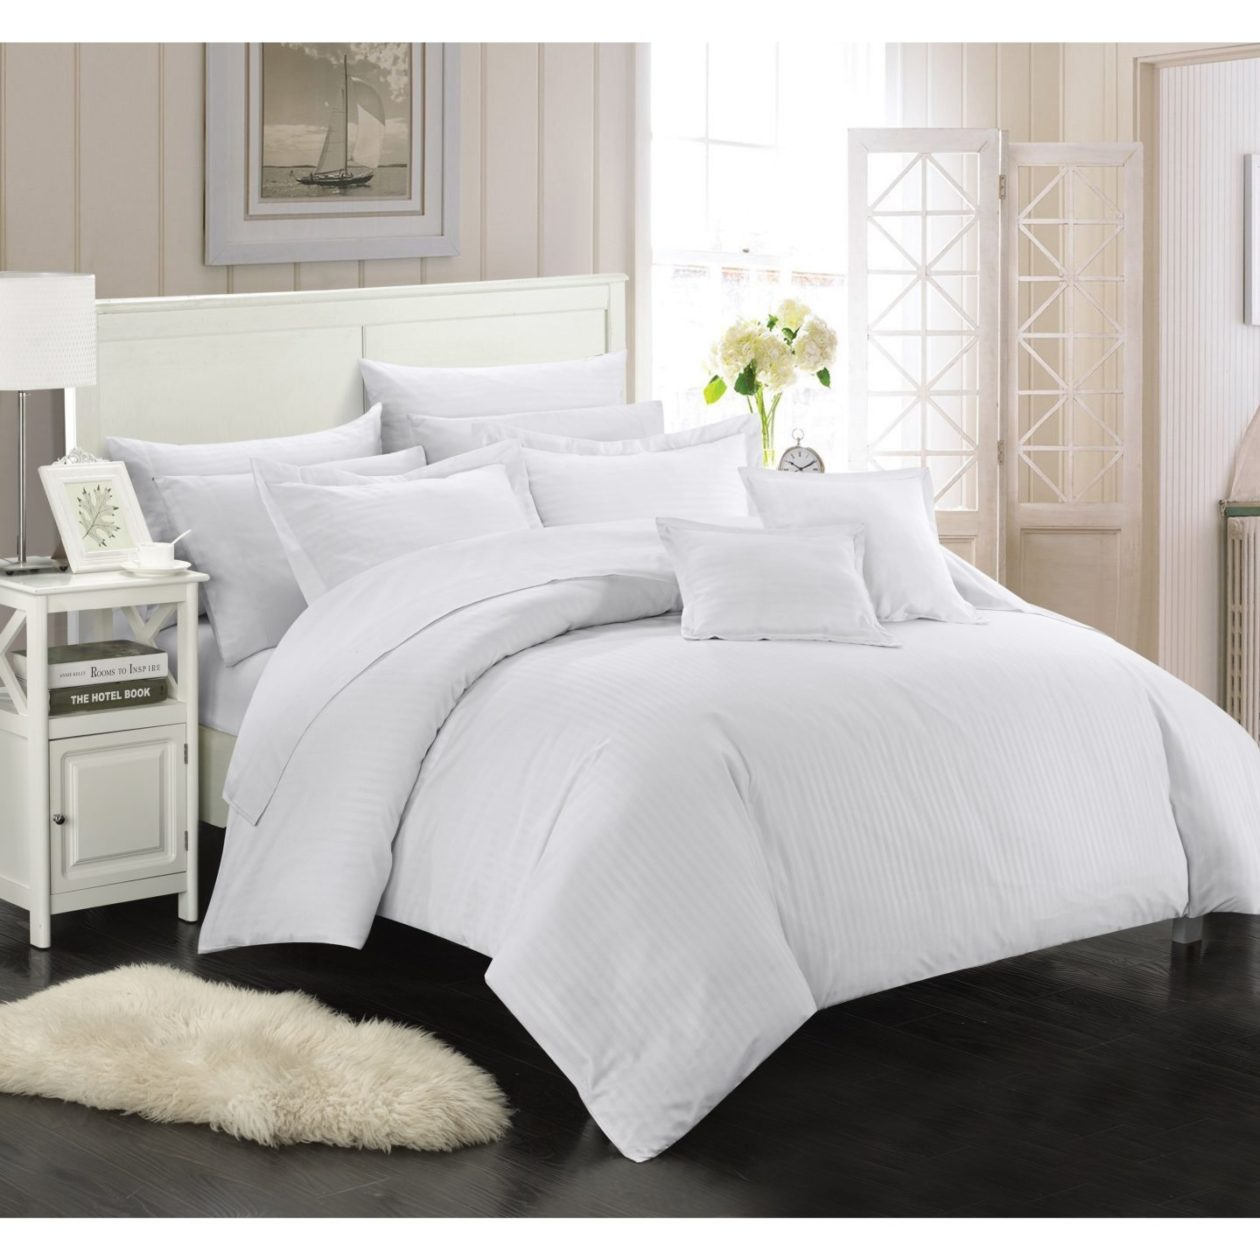 white down bedding neatly made on white bed frame